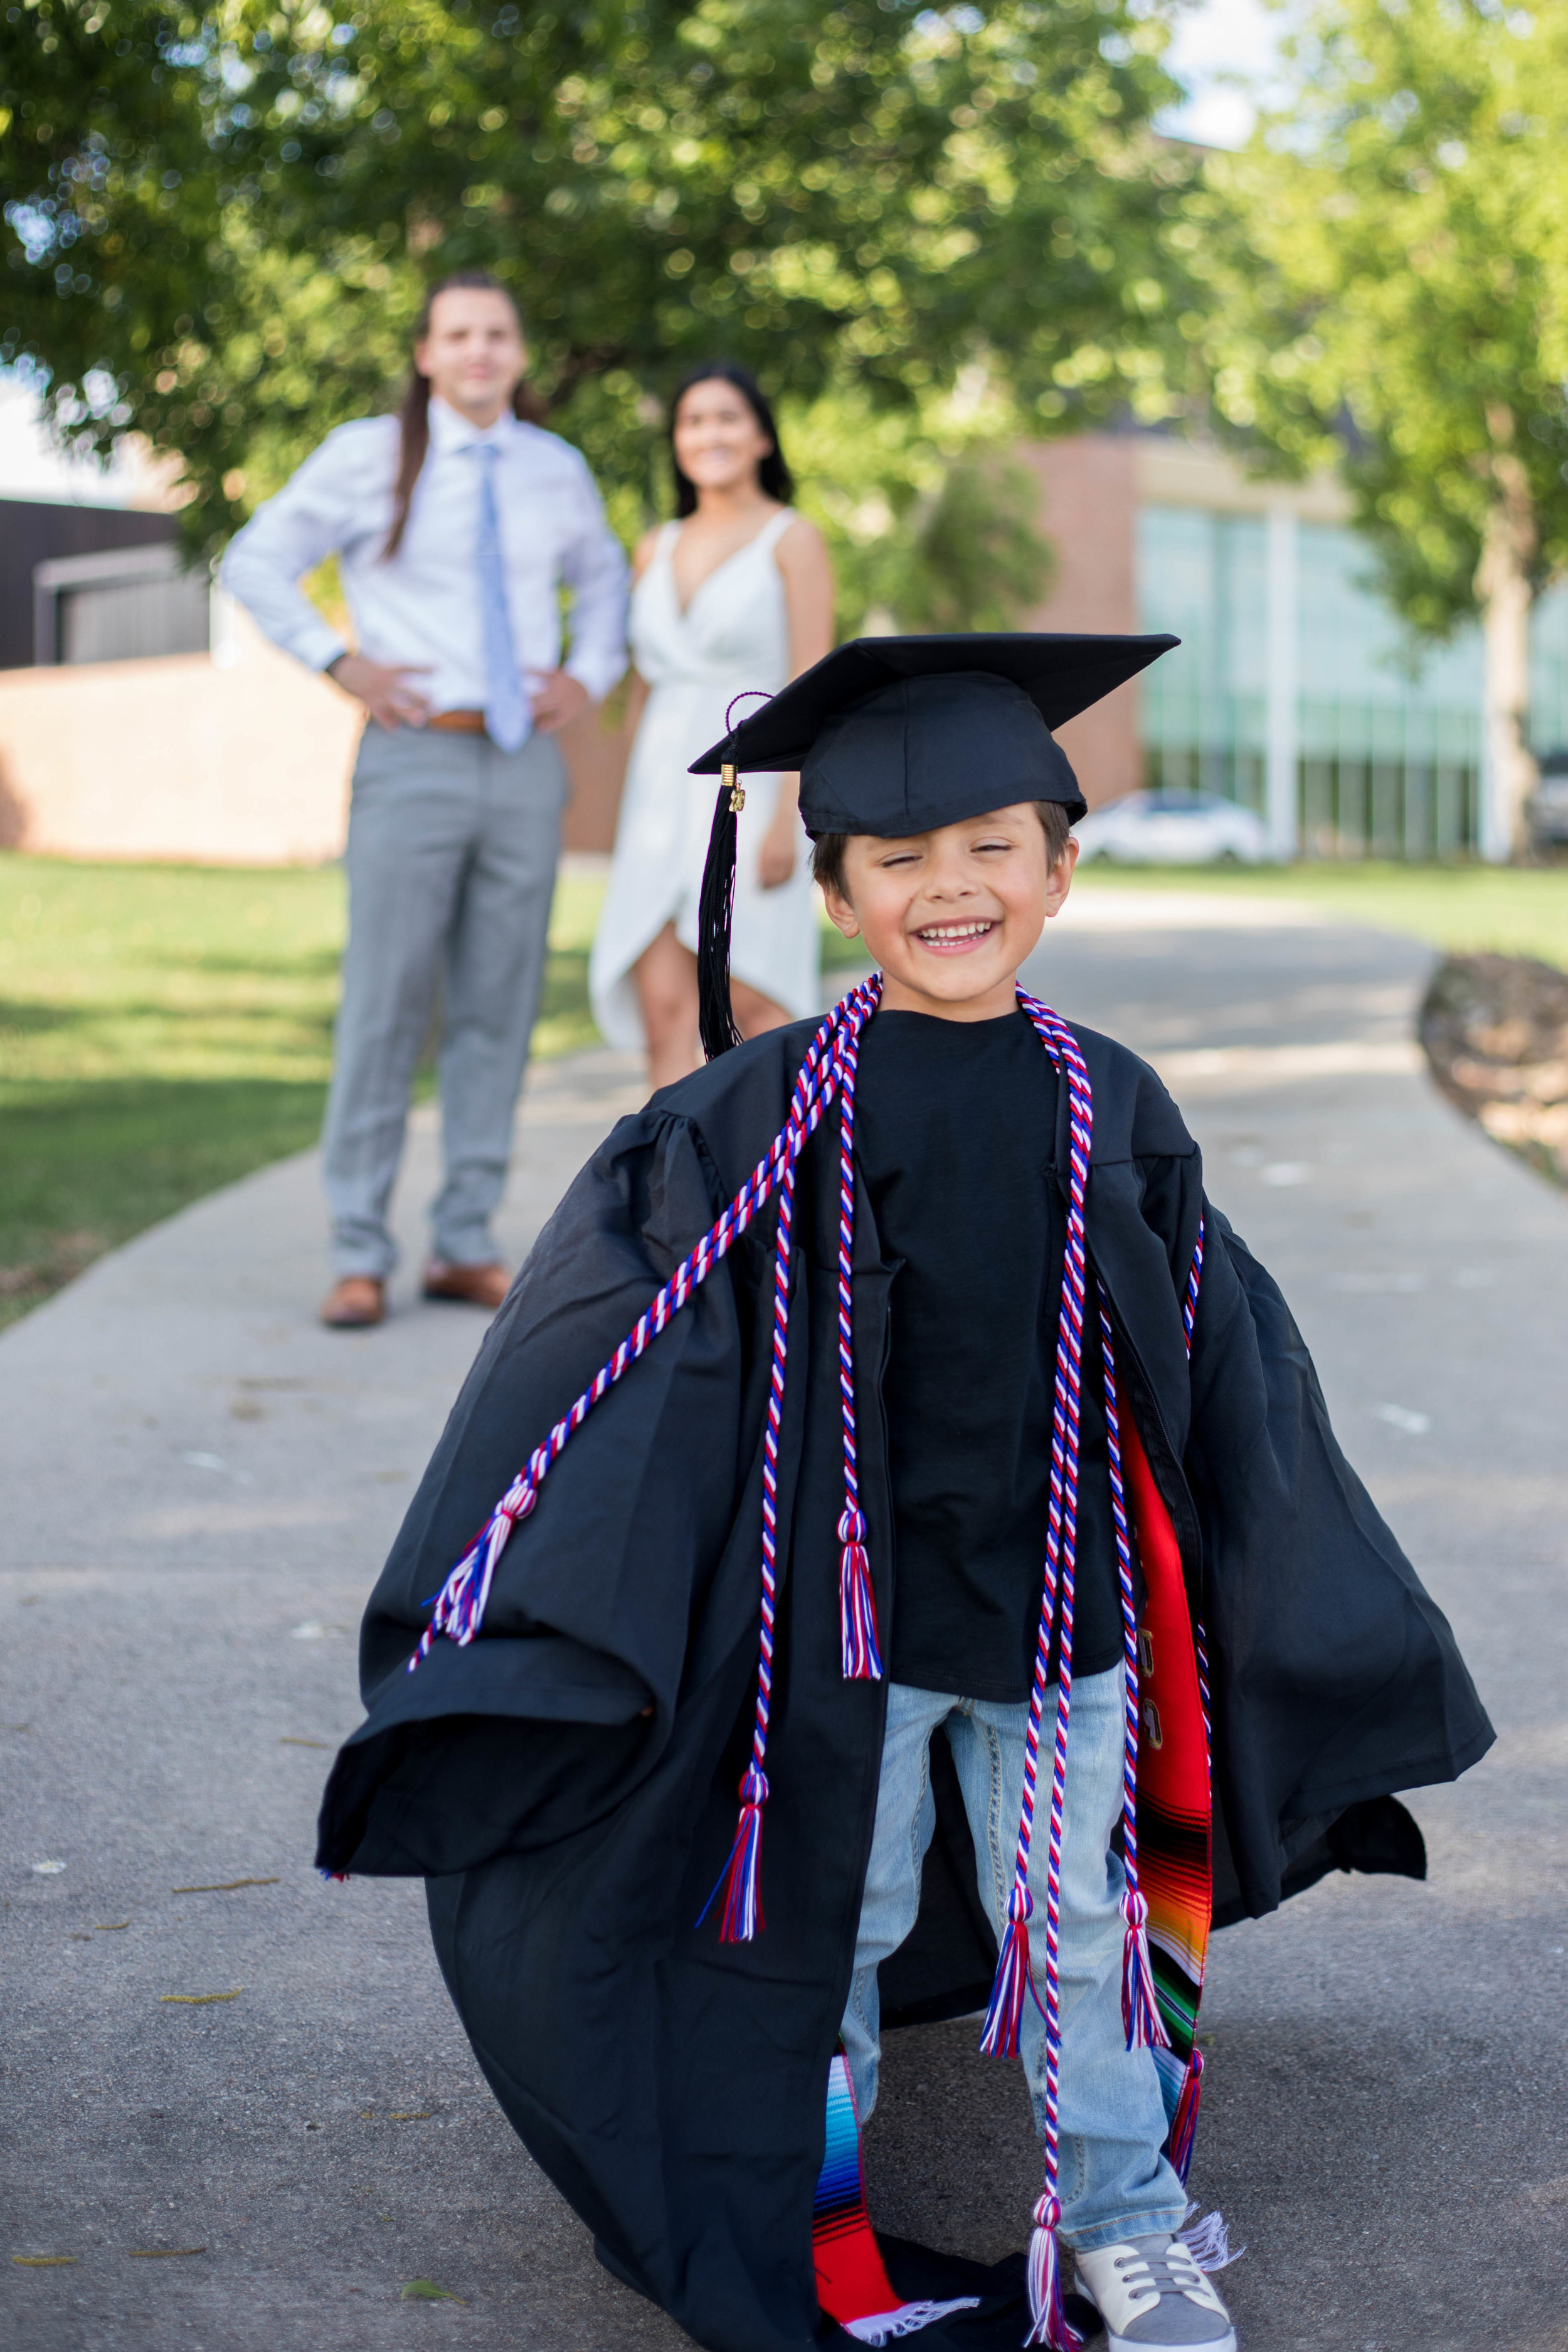 Destiny's Graduation Photos (15 of 19).jpg